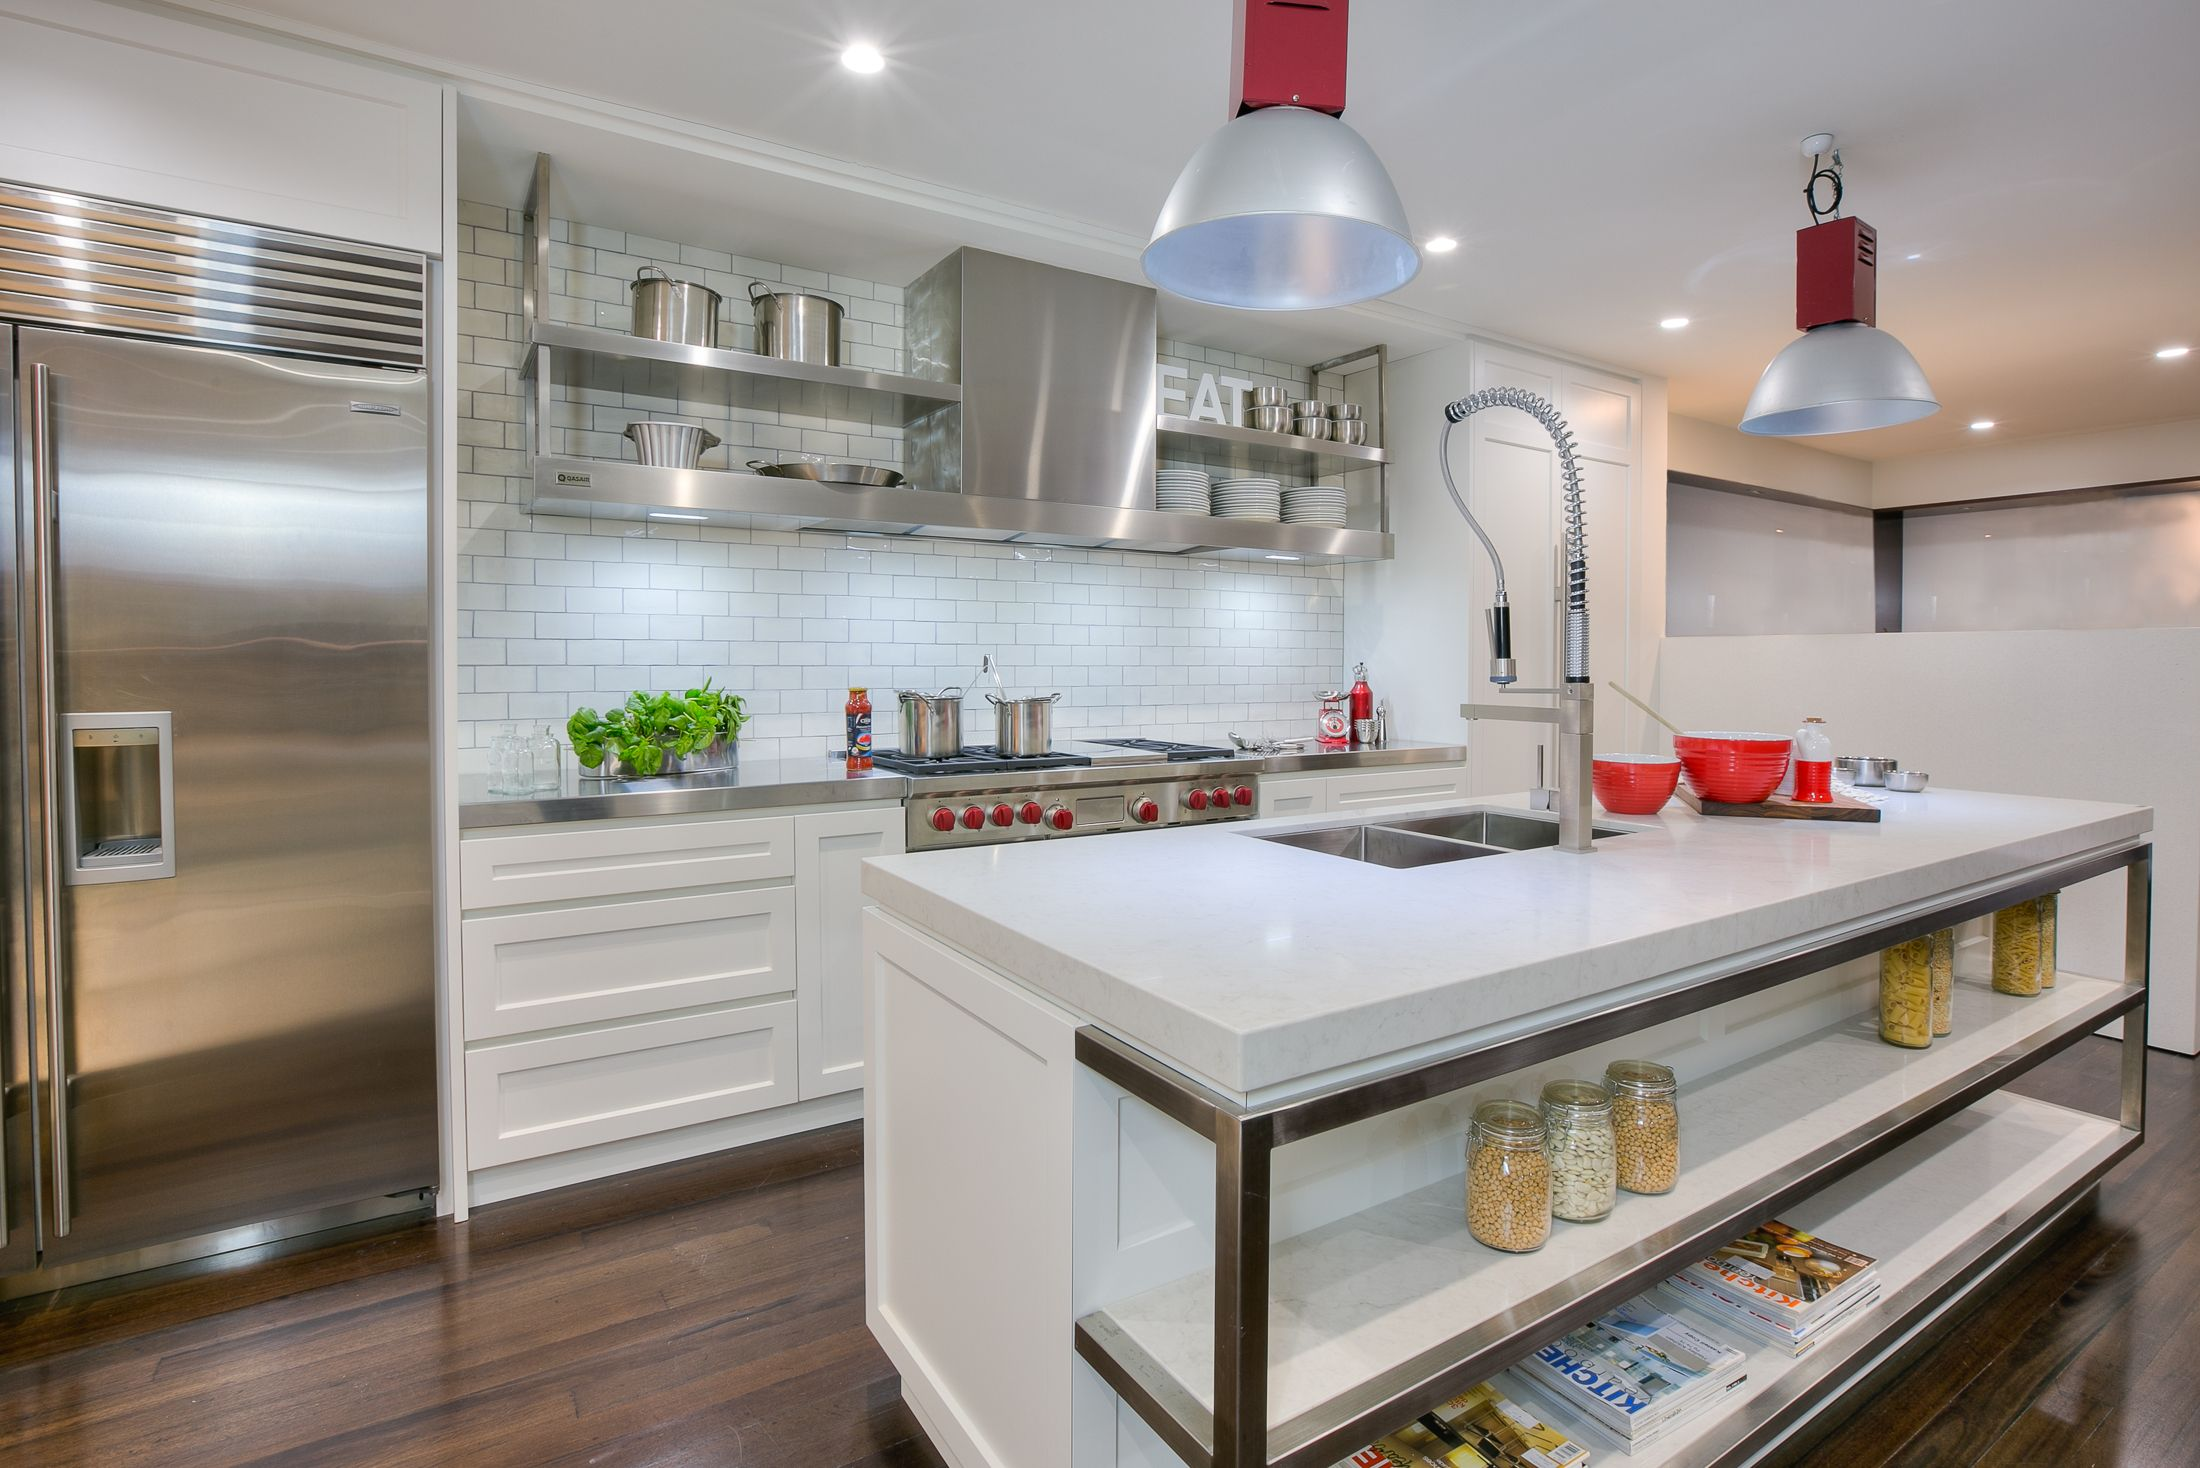 Uncategorized Kitchen Appliances Sydney the sub zero fridge wolf upright and that hood kitchen by kastell sydney